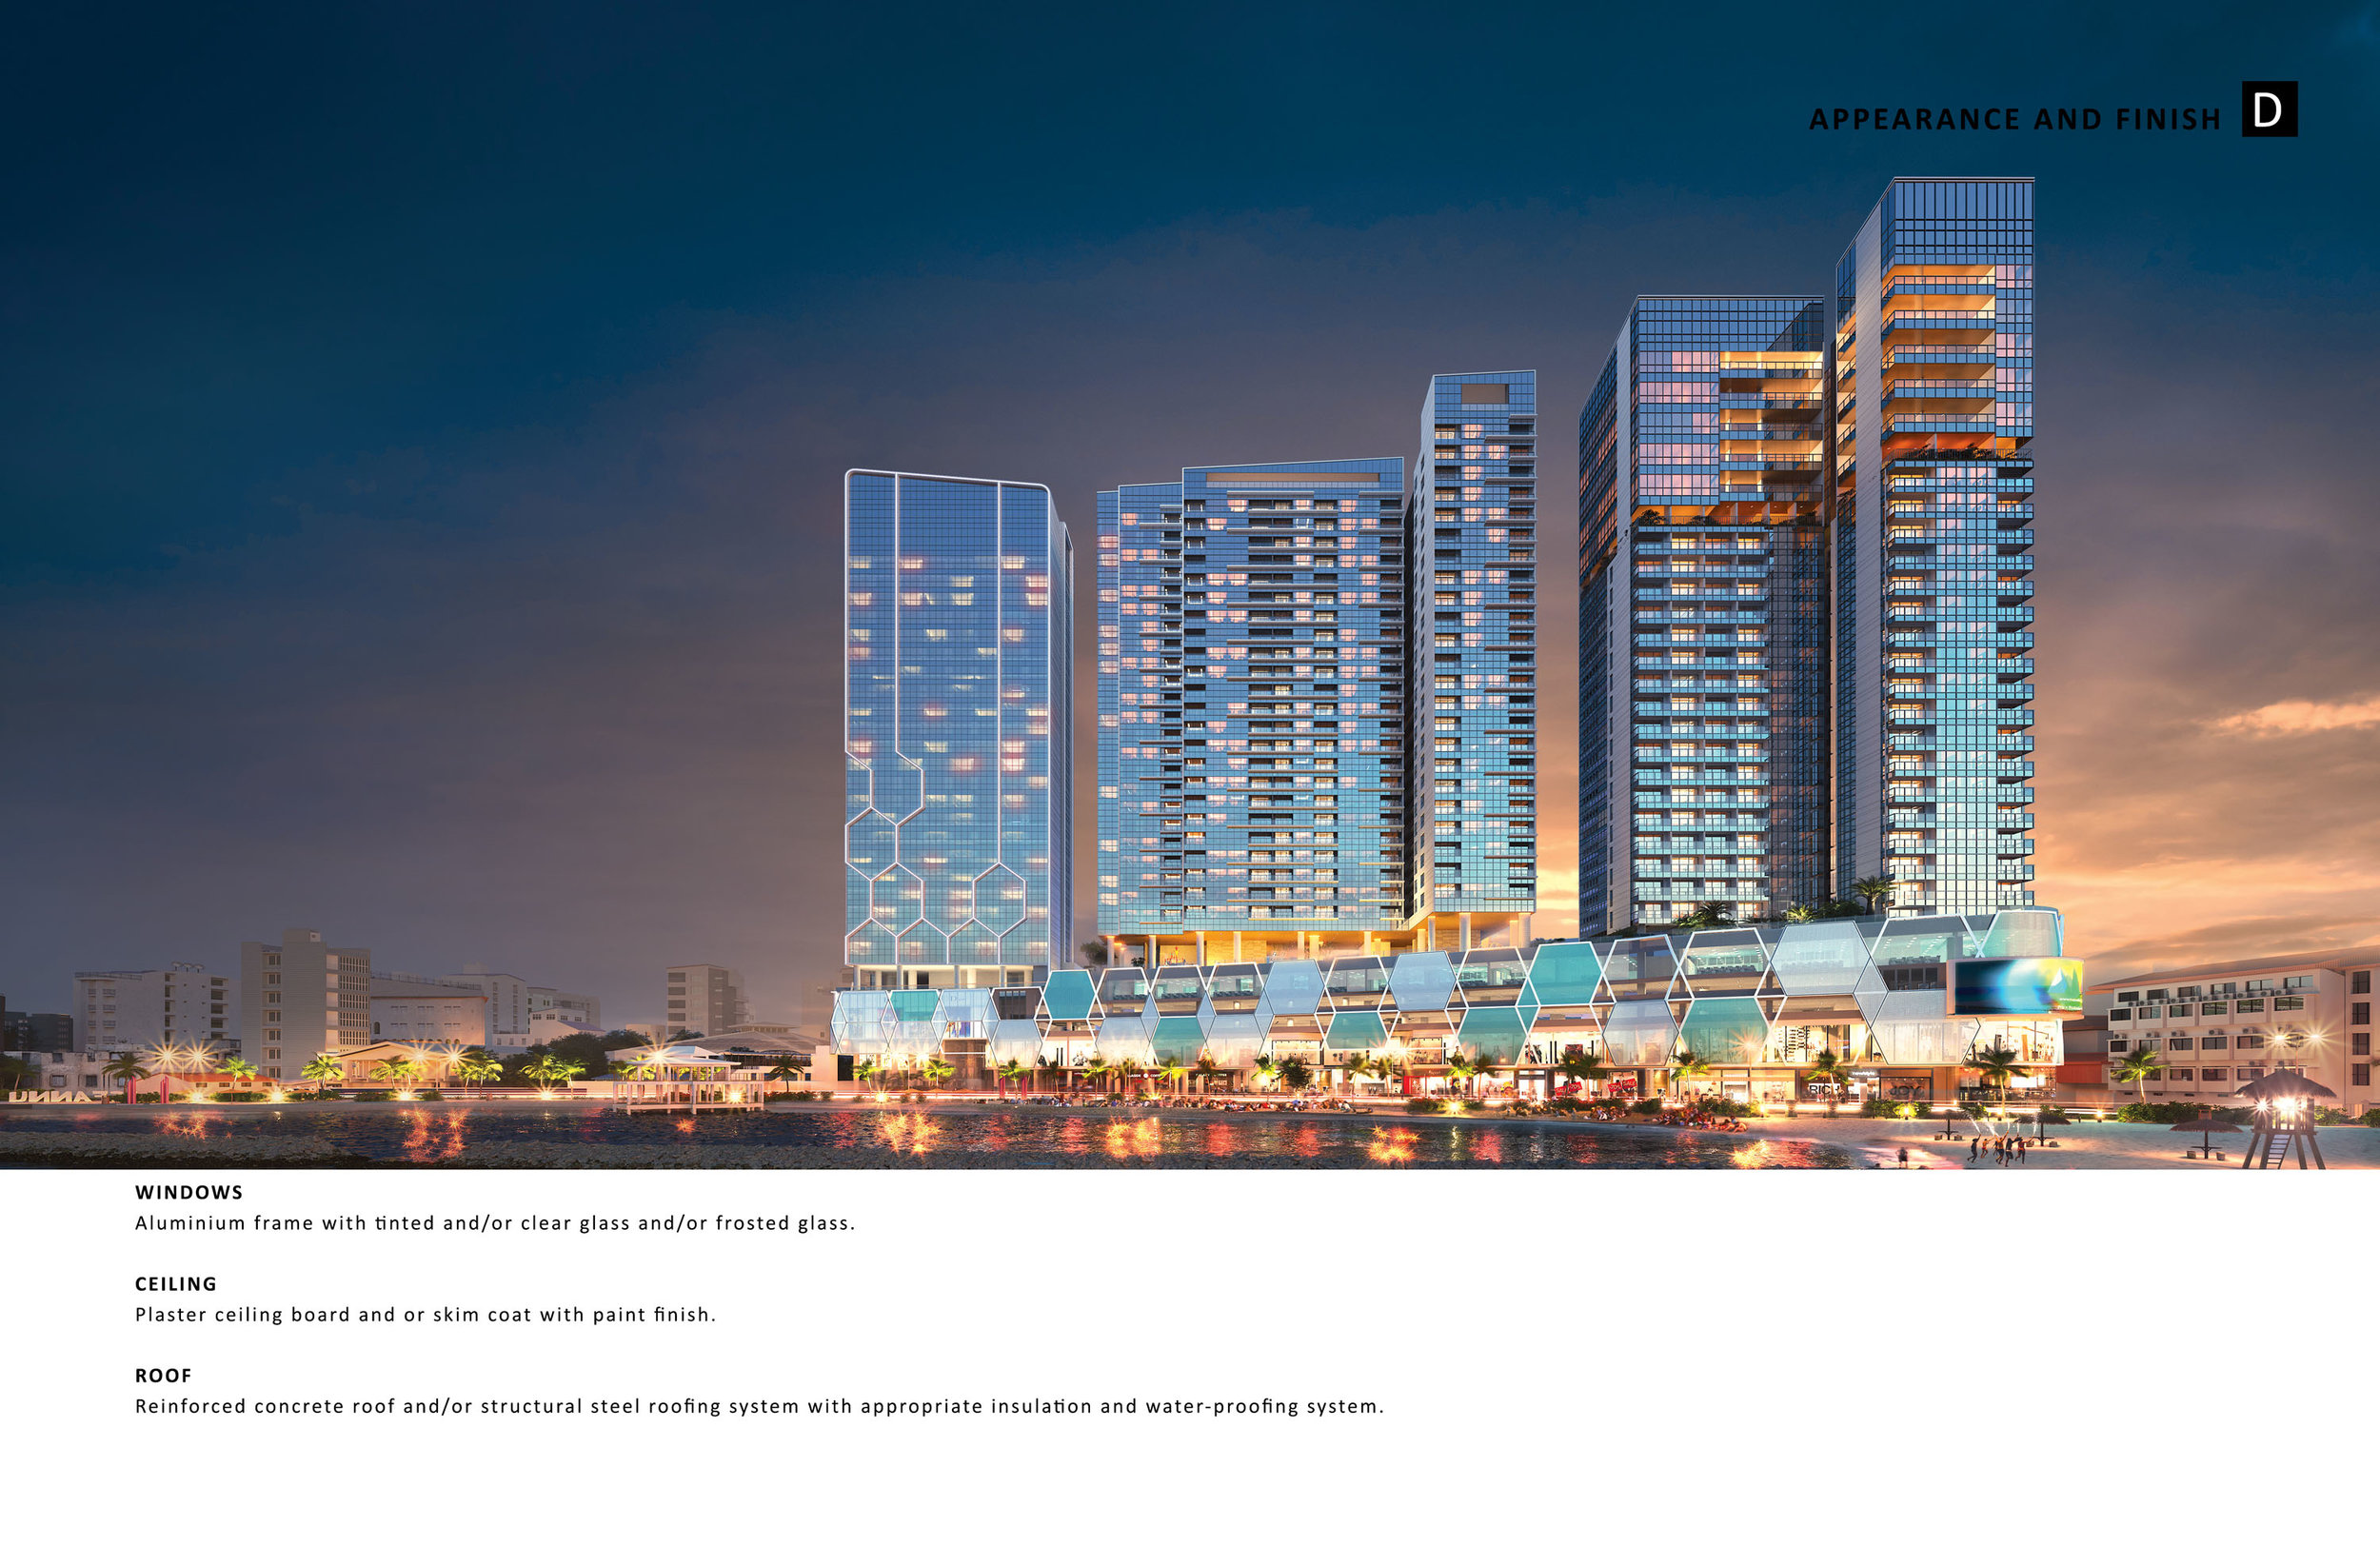 IPA_Coral Boulevard_pages_D-2.jpg